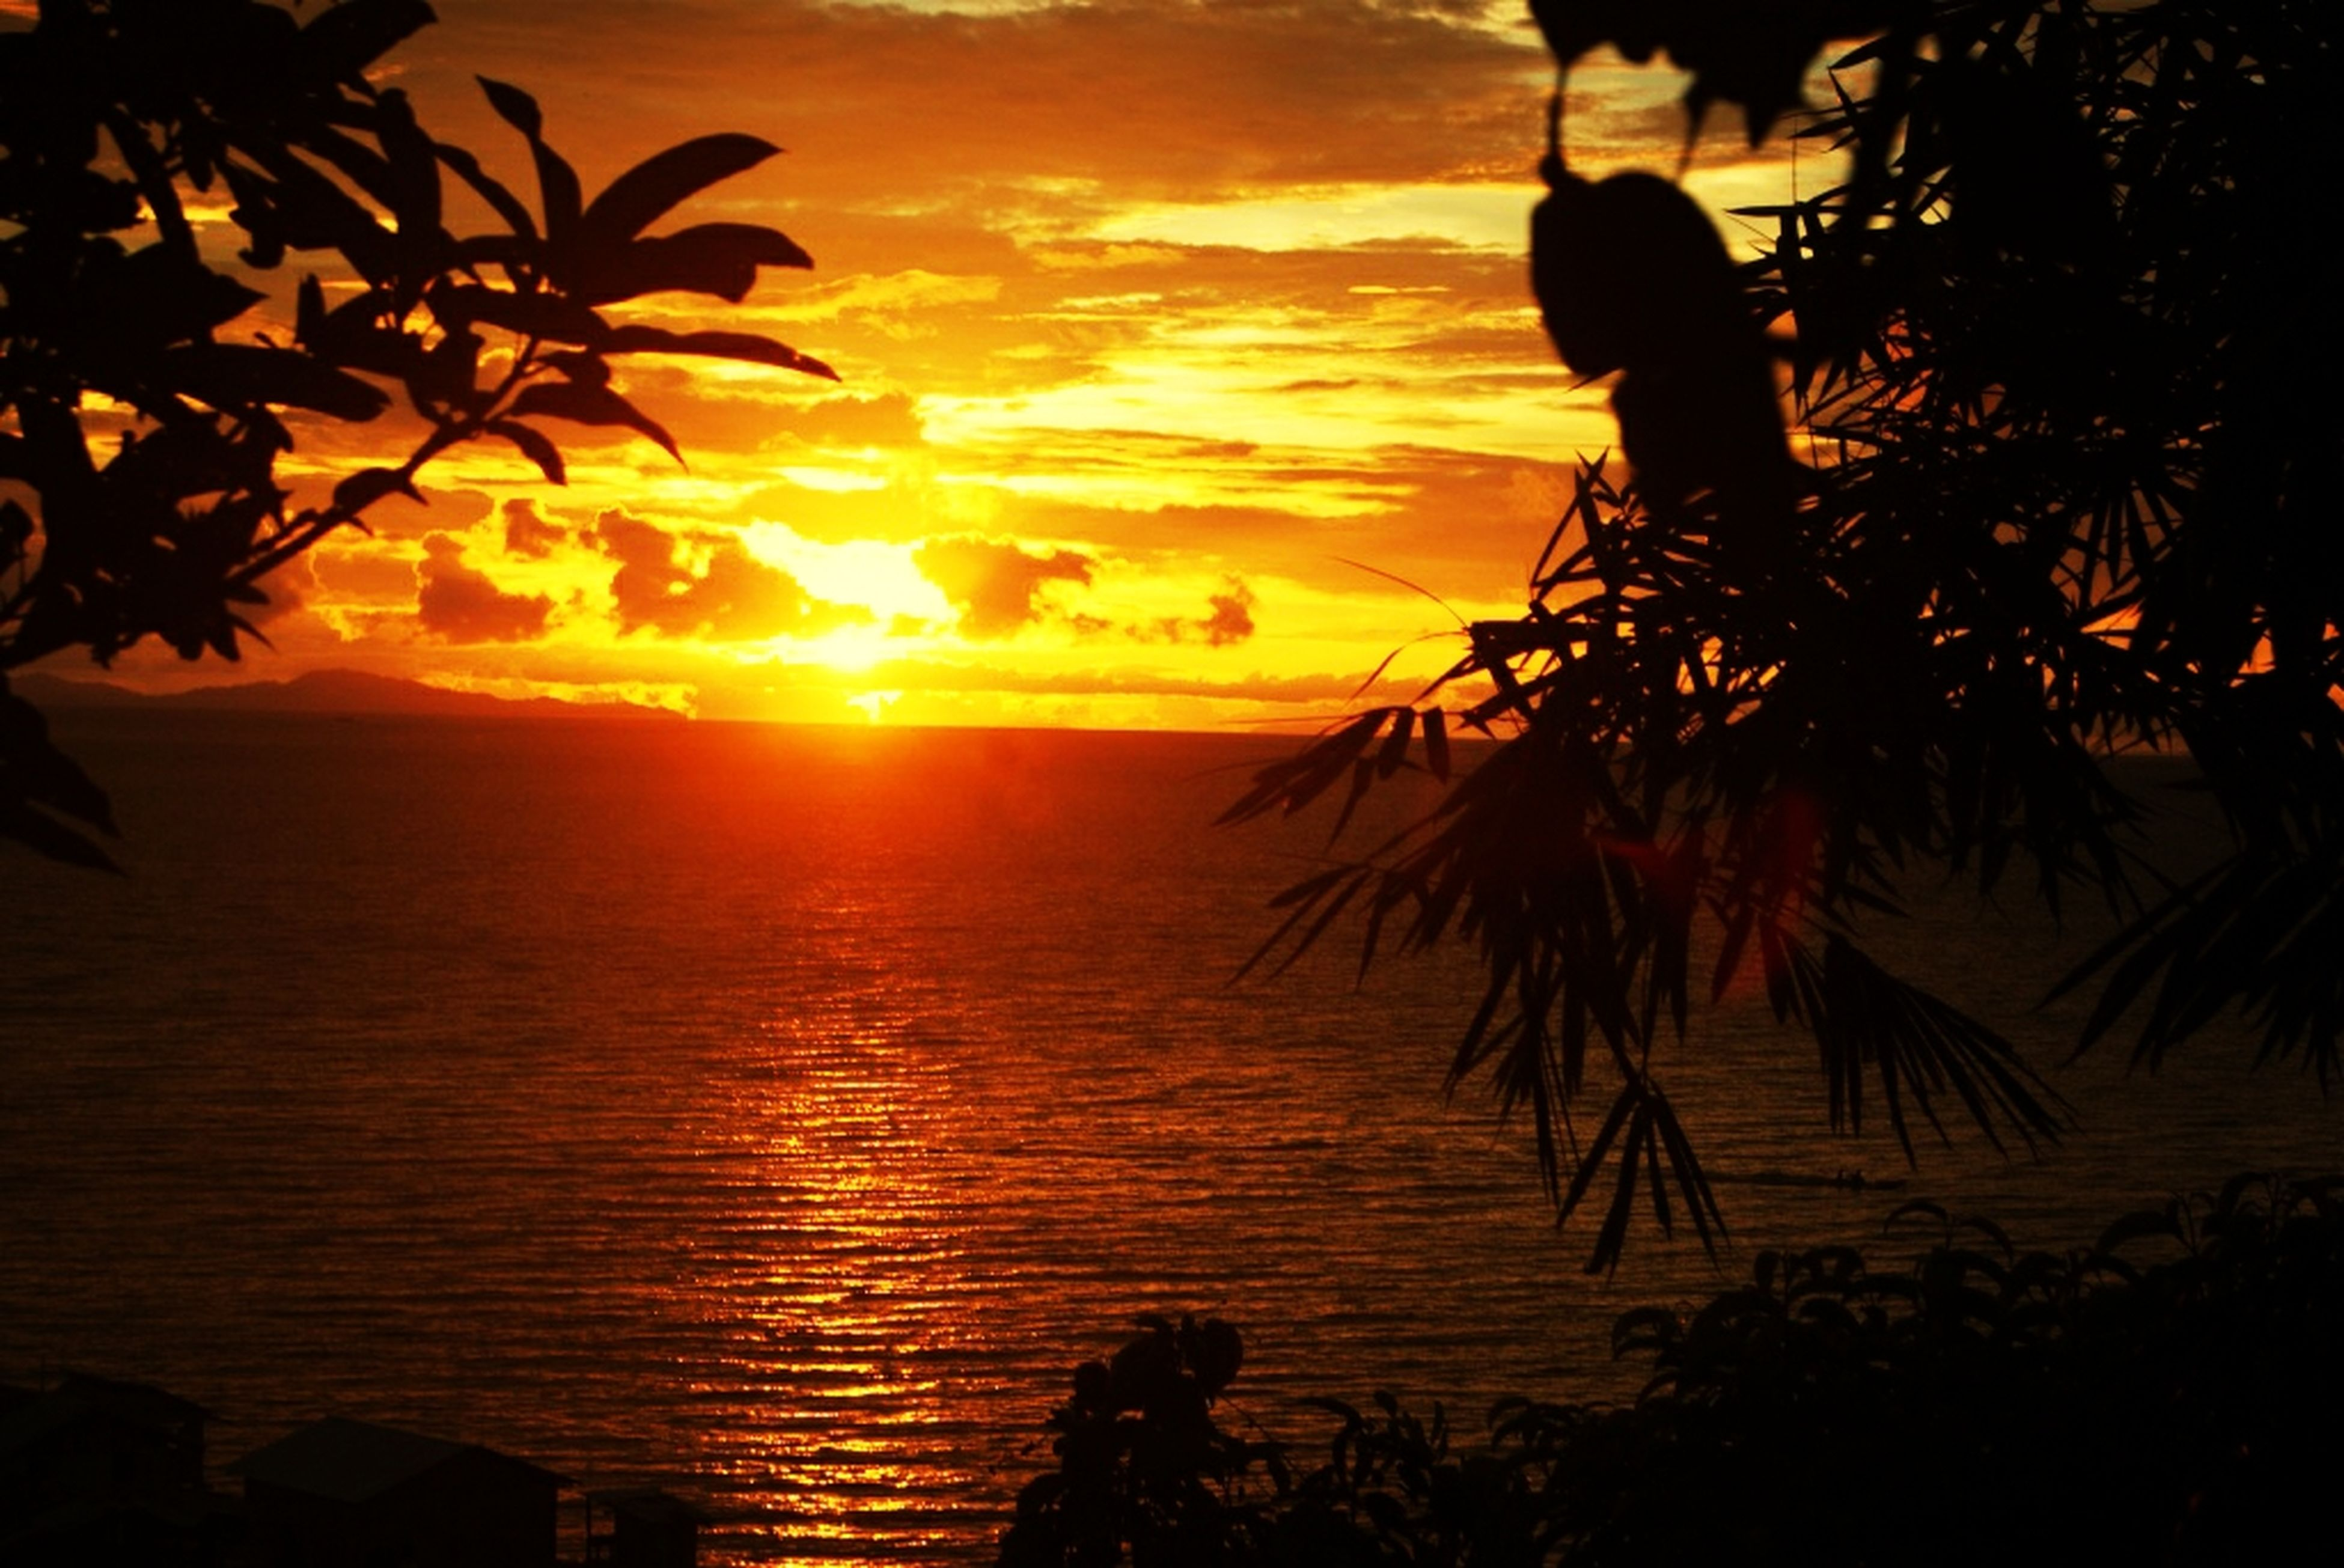 sunset, horizon over water, sea, water, sun, beauty in nature, tranquil scene, scenics, tranquility, silhouette, sky, orange color, beach, palm tree, nature, idyllic, tree, sunlight, shore, reflection